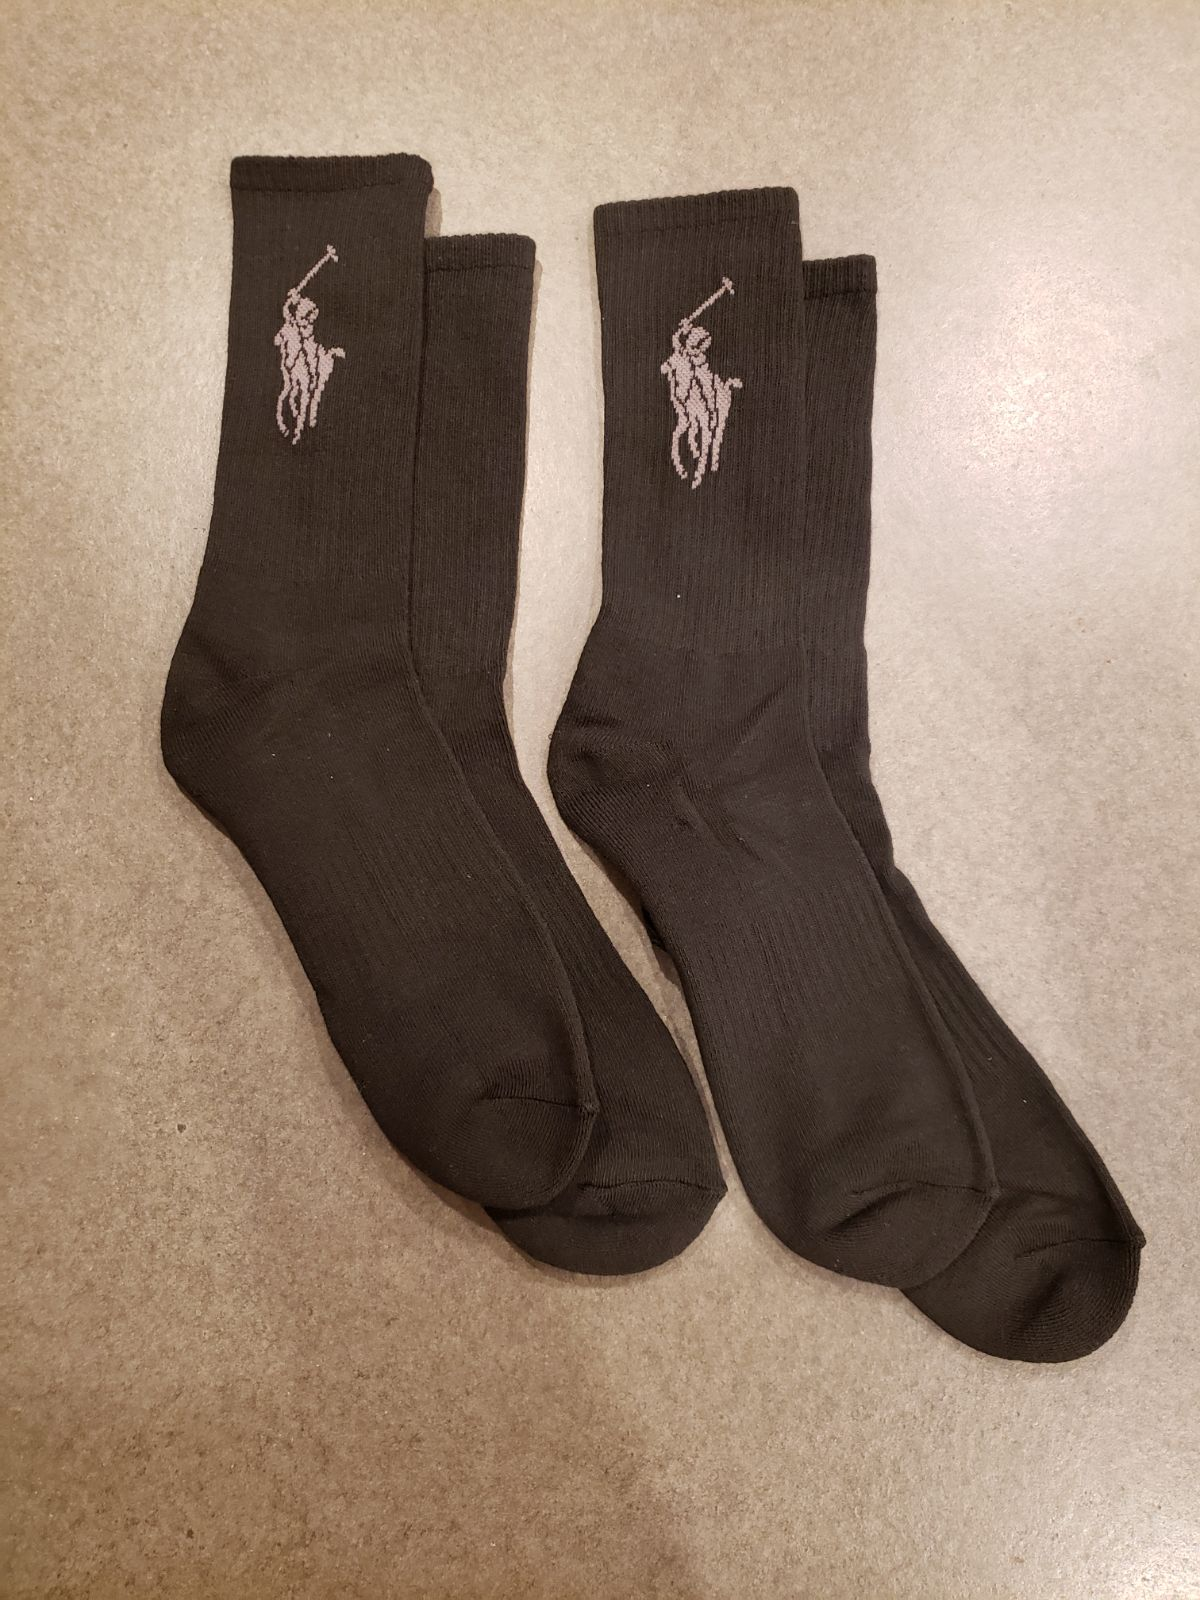 Ralph Lauren 2 Pairs of Socks